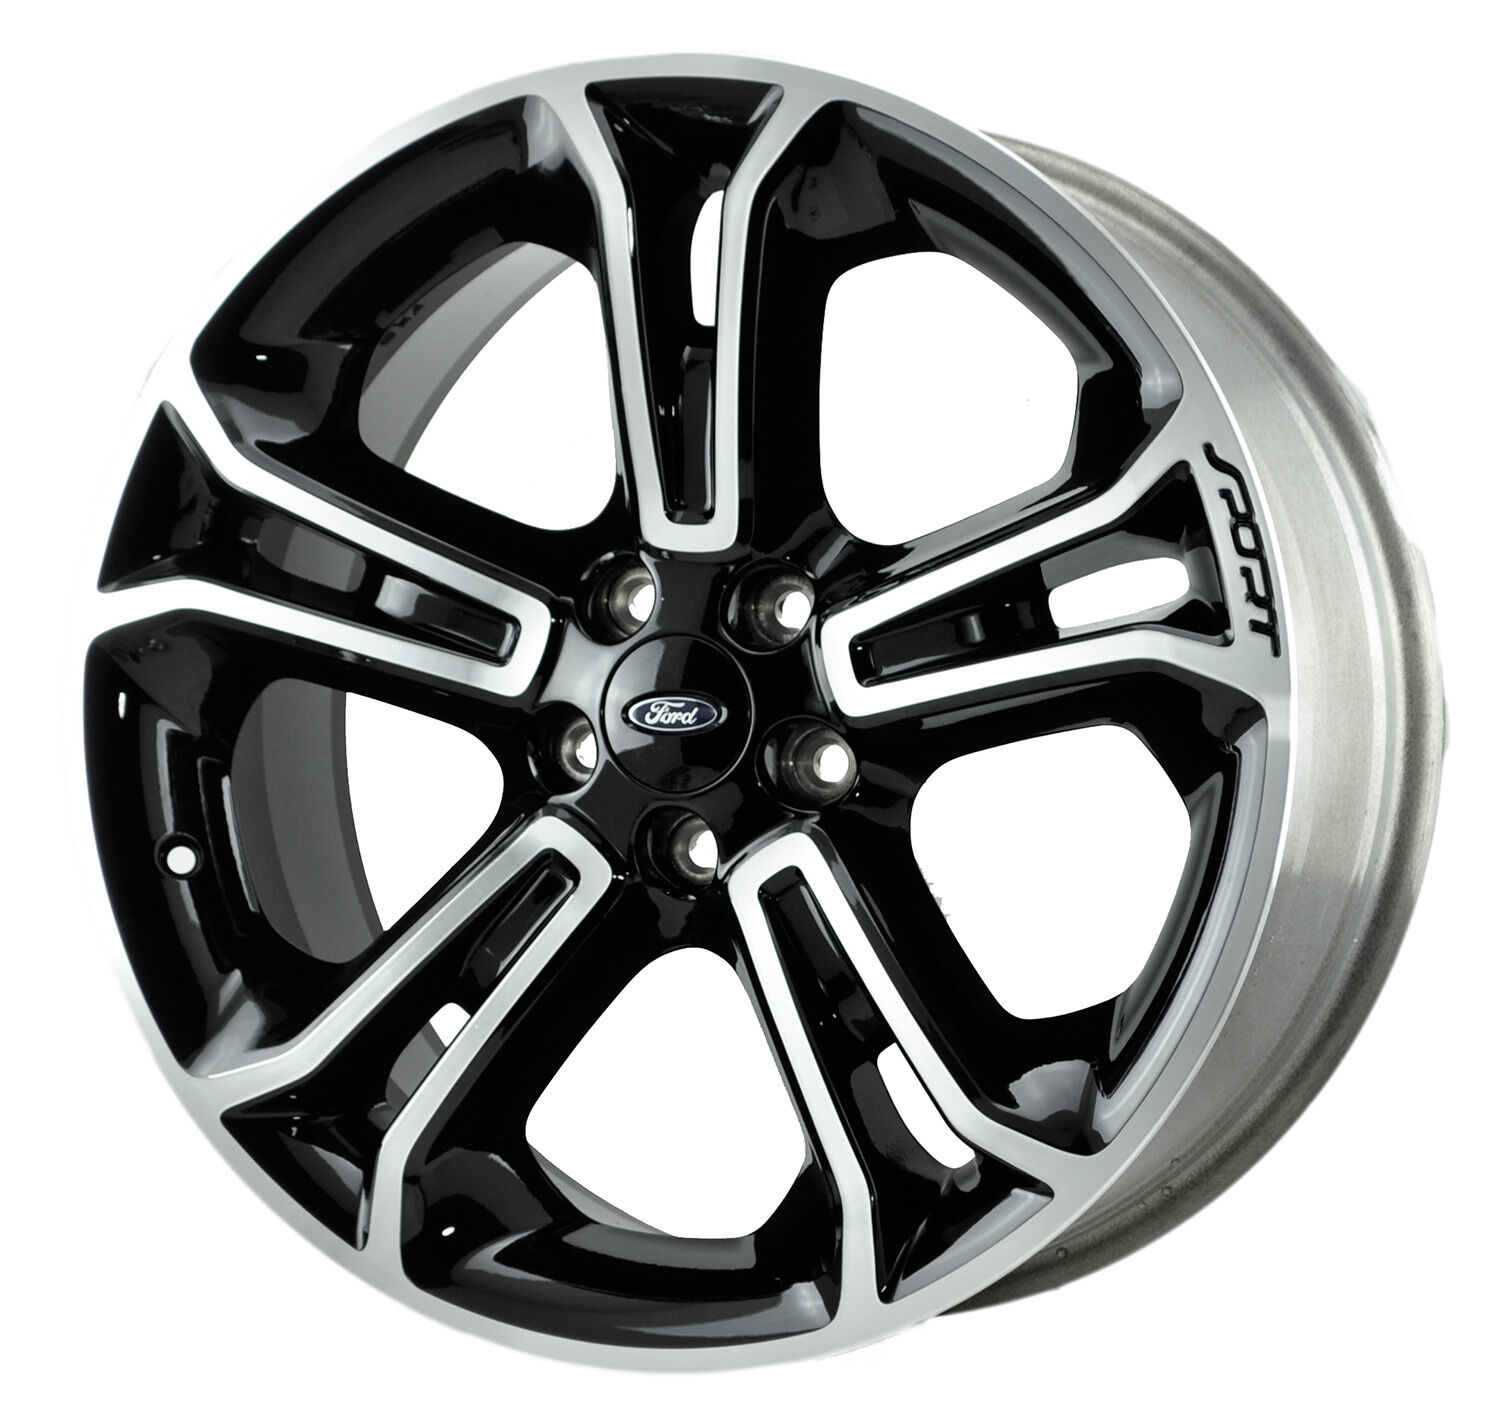 Ford Parts Wheels : Buy used ford wheels